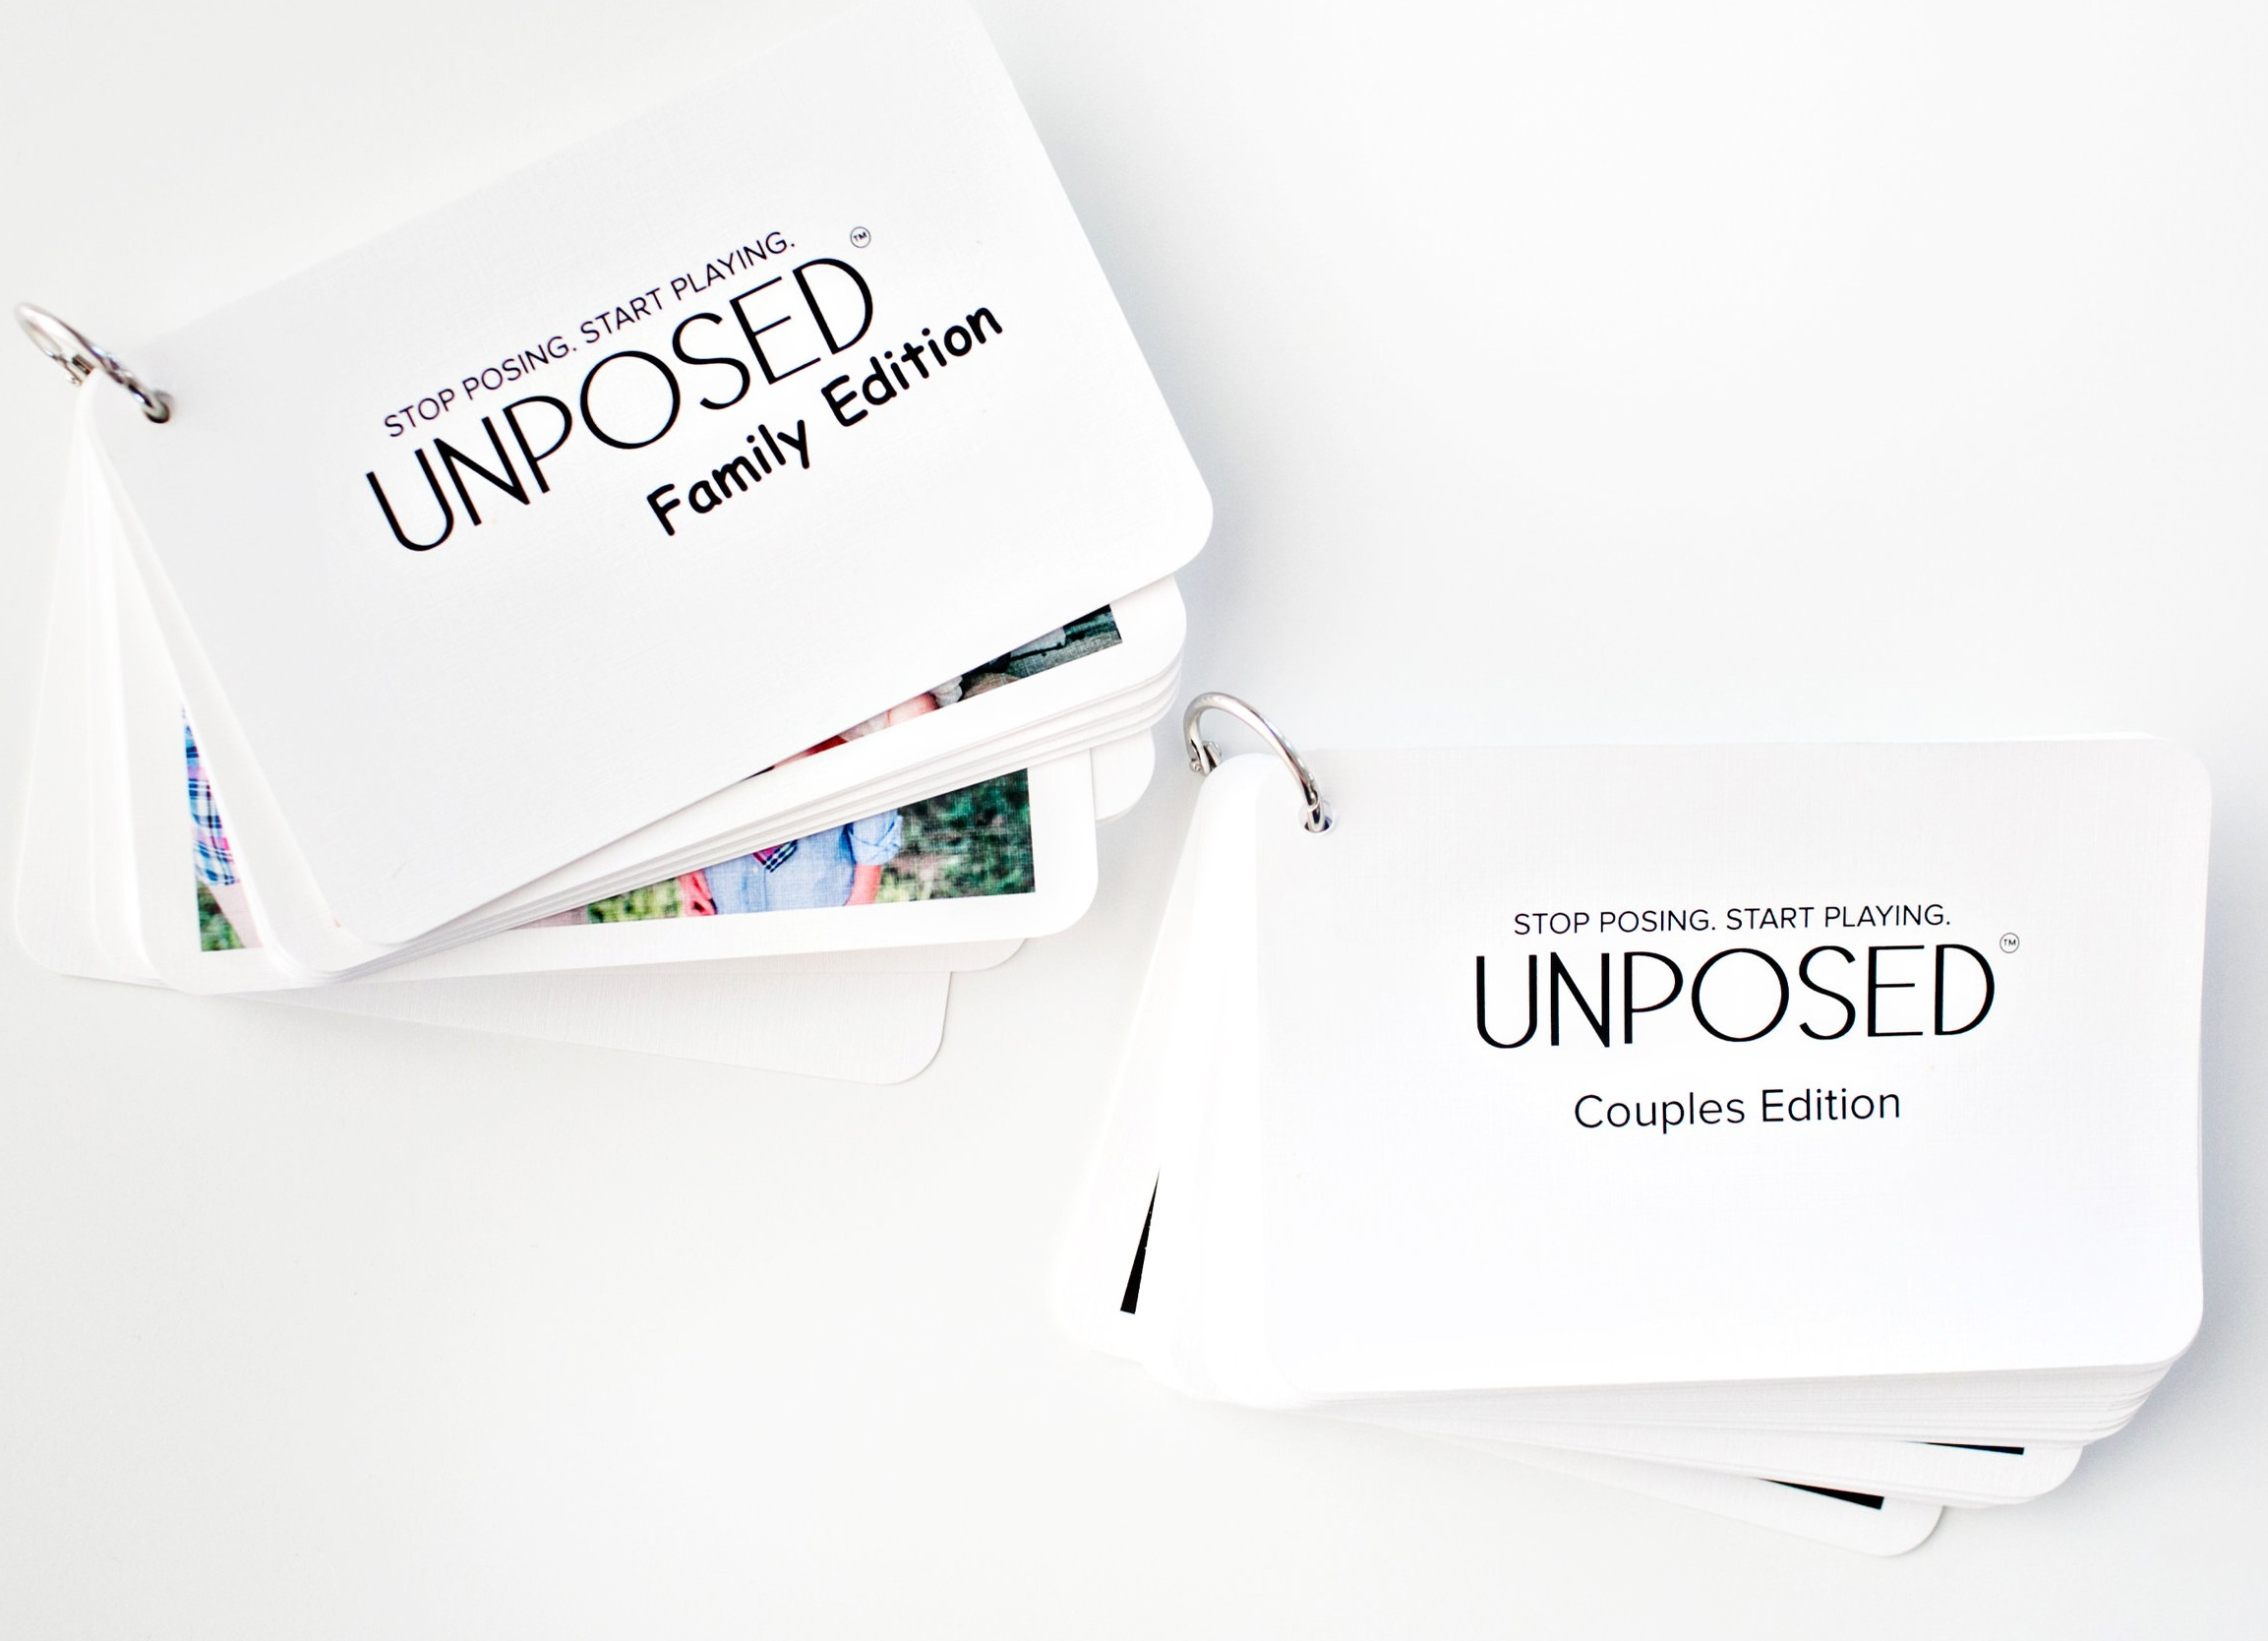 Who is Unposed for? - If you are a professional photographer or videographer and you shoot weddings, couples and families, UNPOSED is for you.